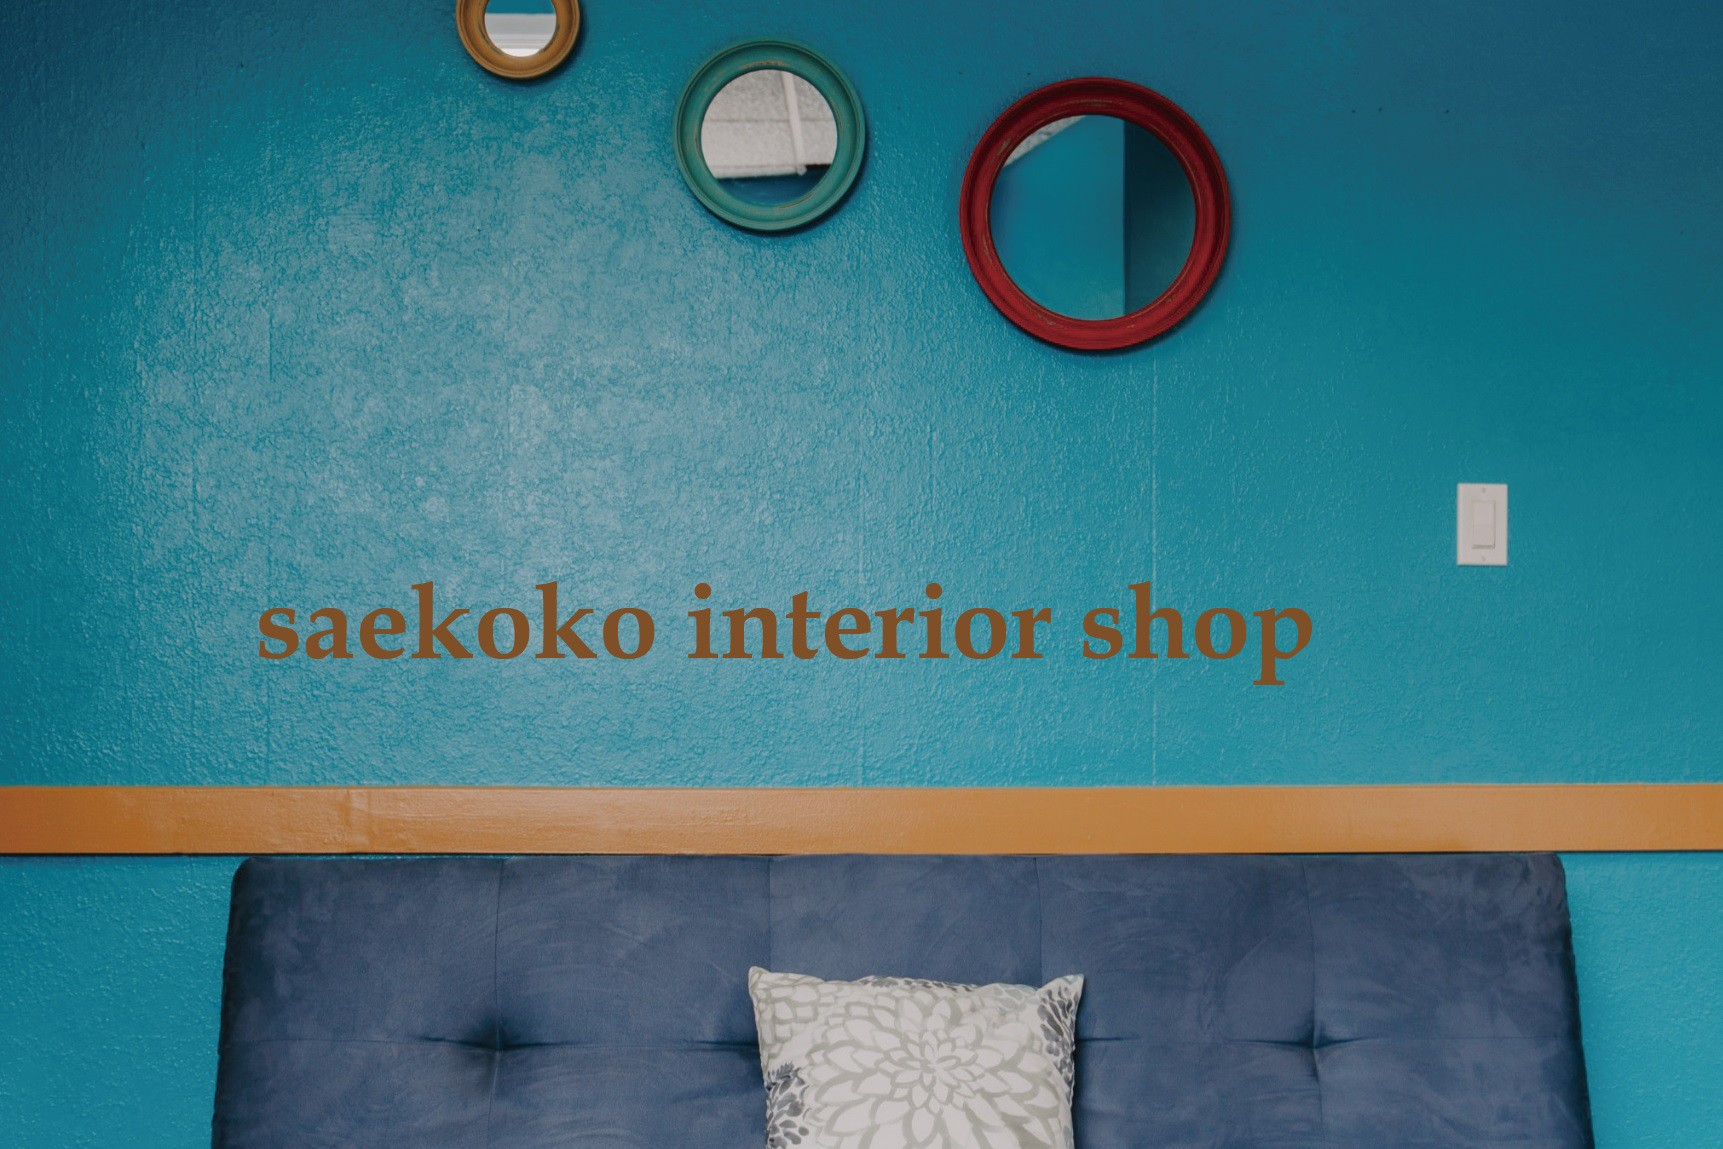 saekoko Interior shop